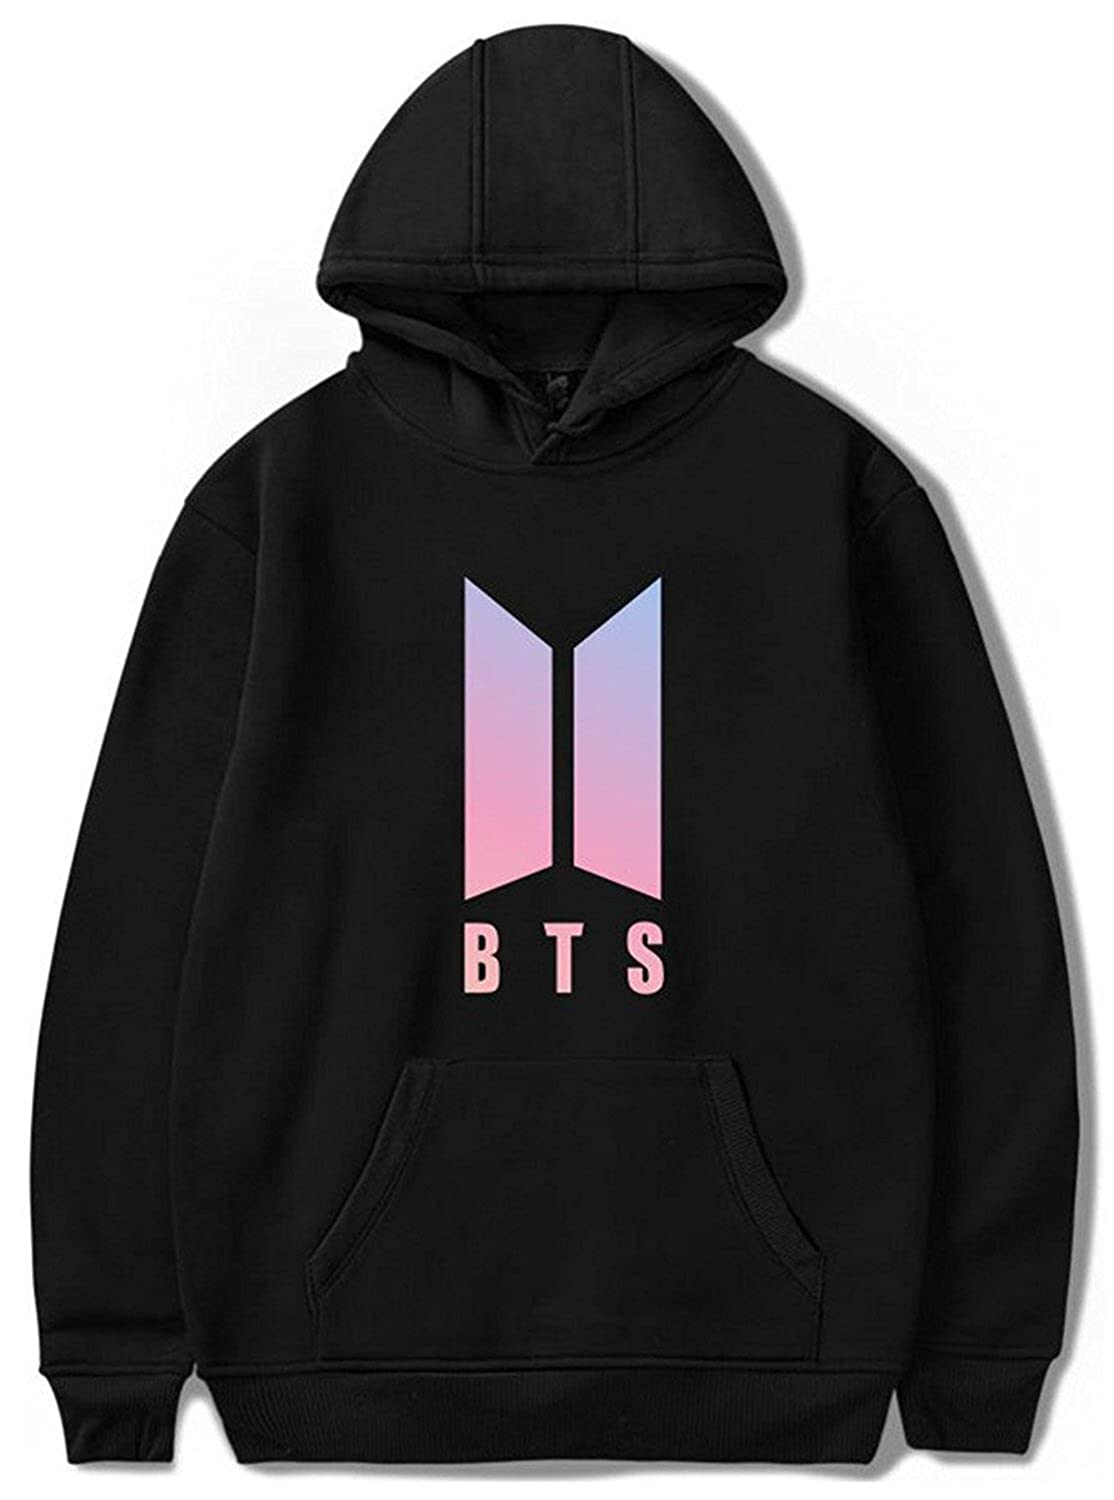 EmilyLe Womens Sweatshirt Kpop Bangtan Boys Unisex Fans Cheer Hoodies JIN SUGA Jimin V JUNG KOOK at Amazon Womens Clothing store: